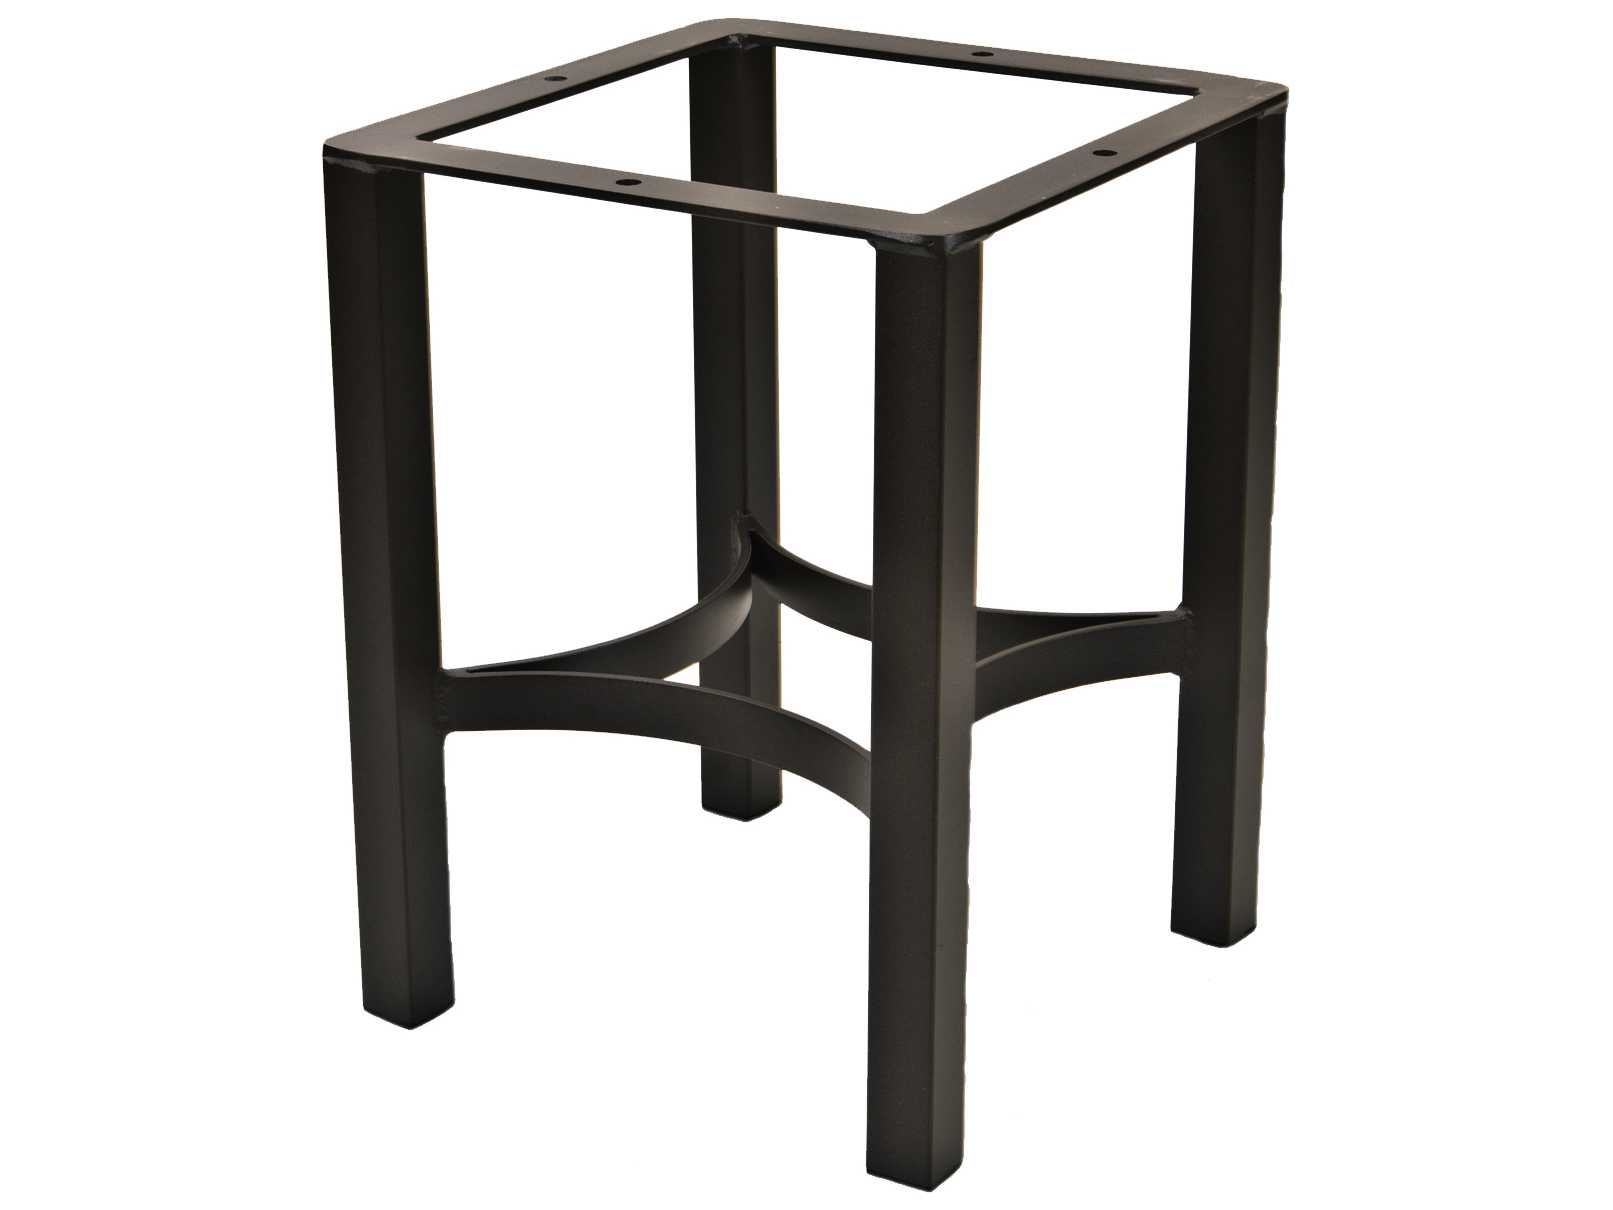 Ow Lee Palazzo Wrought Iron End Table Square Base Ow1st01